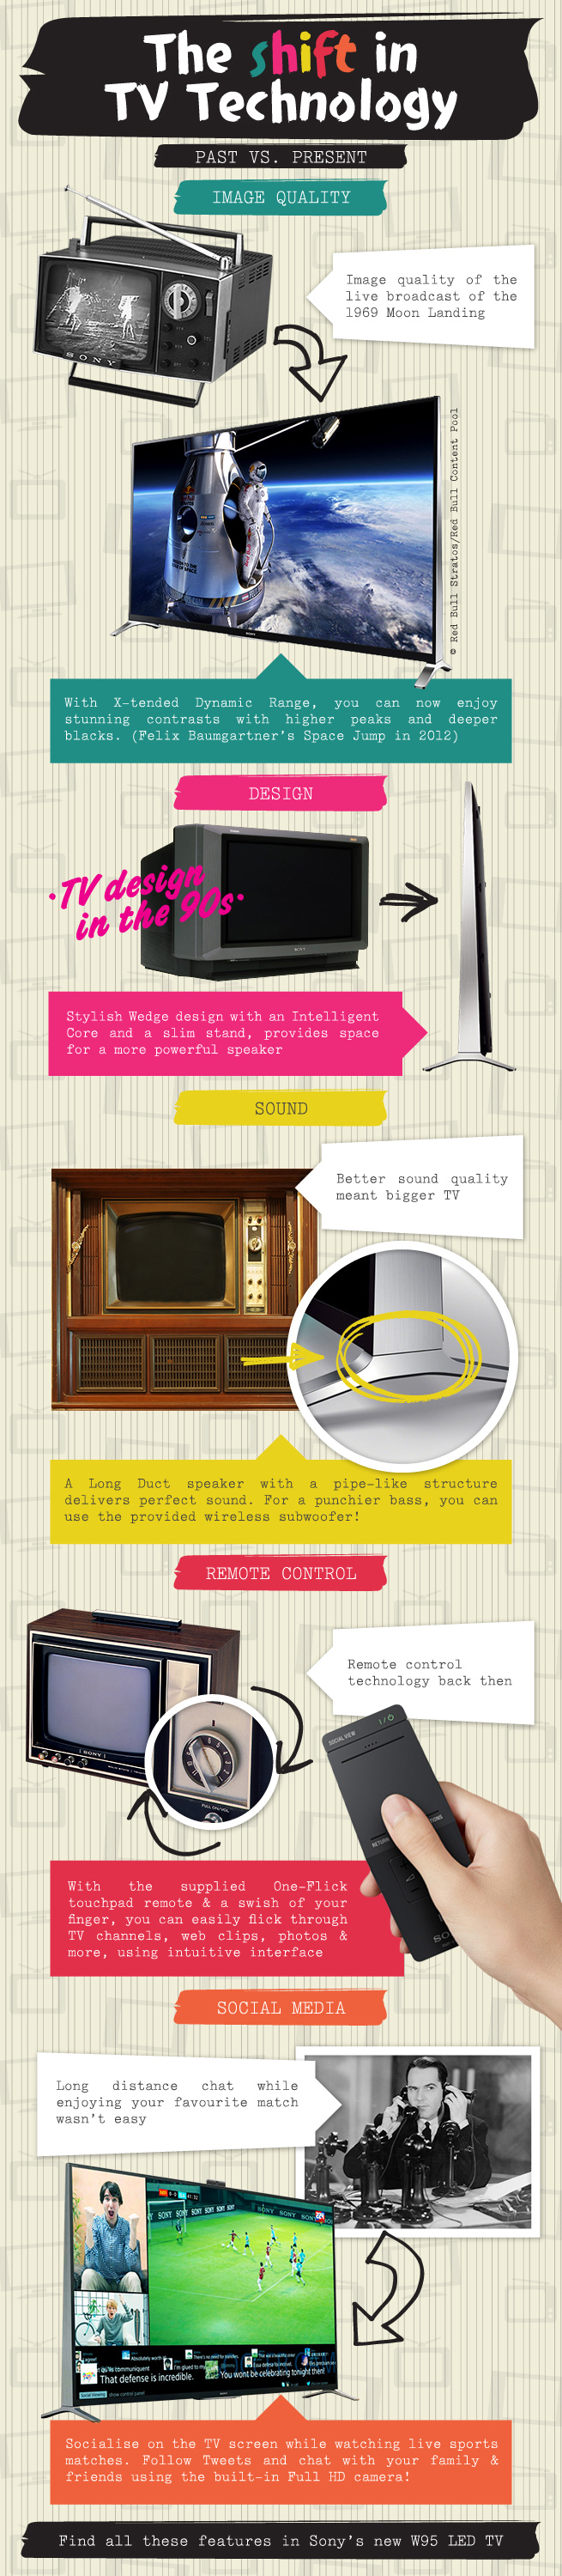 TV: Past vs Present - Infographic